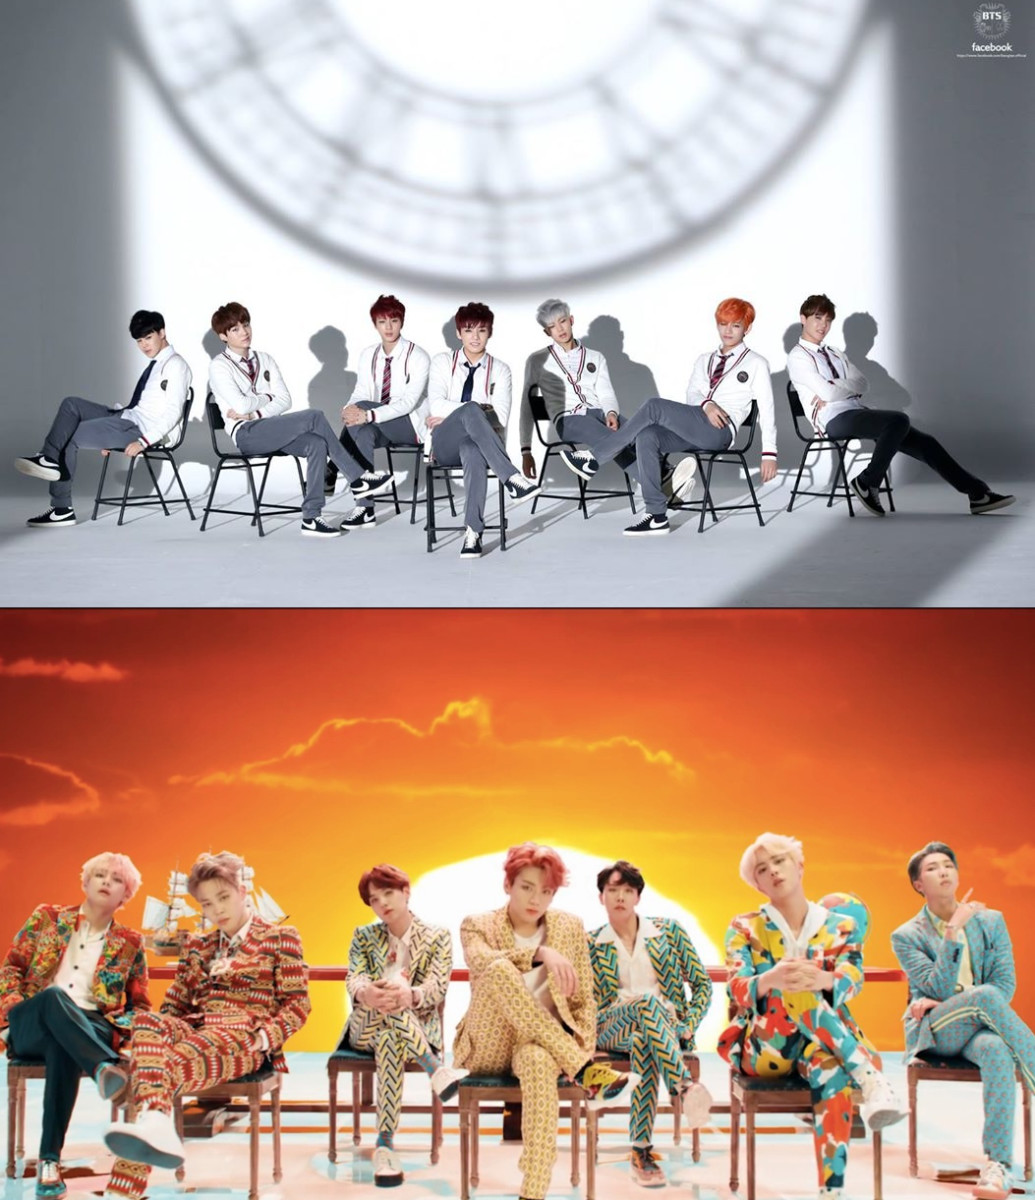 BTS is known for their continuing saga, each MV reveals certain parts of a story they seem to be telling from their very first MV. New MV usually refer to past ones.